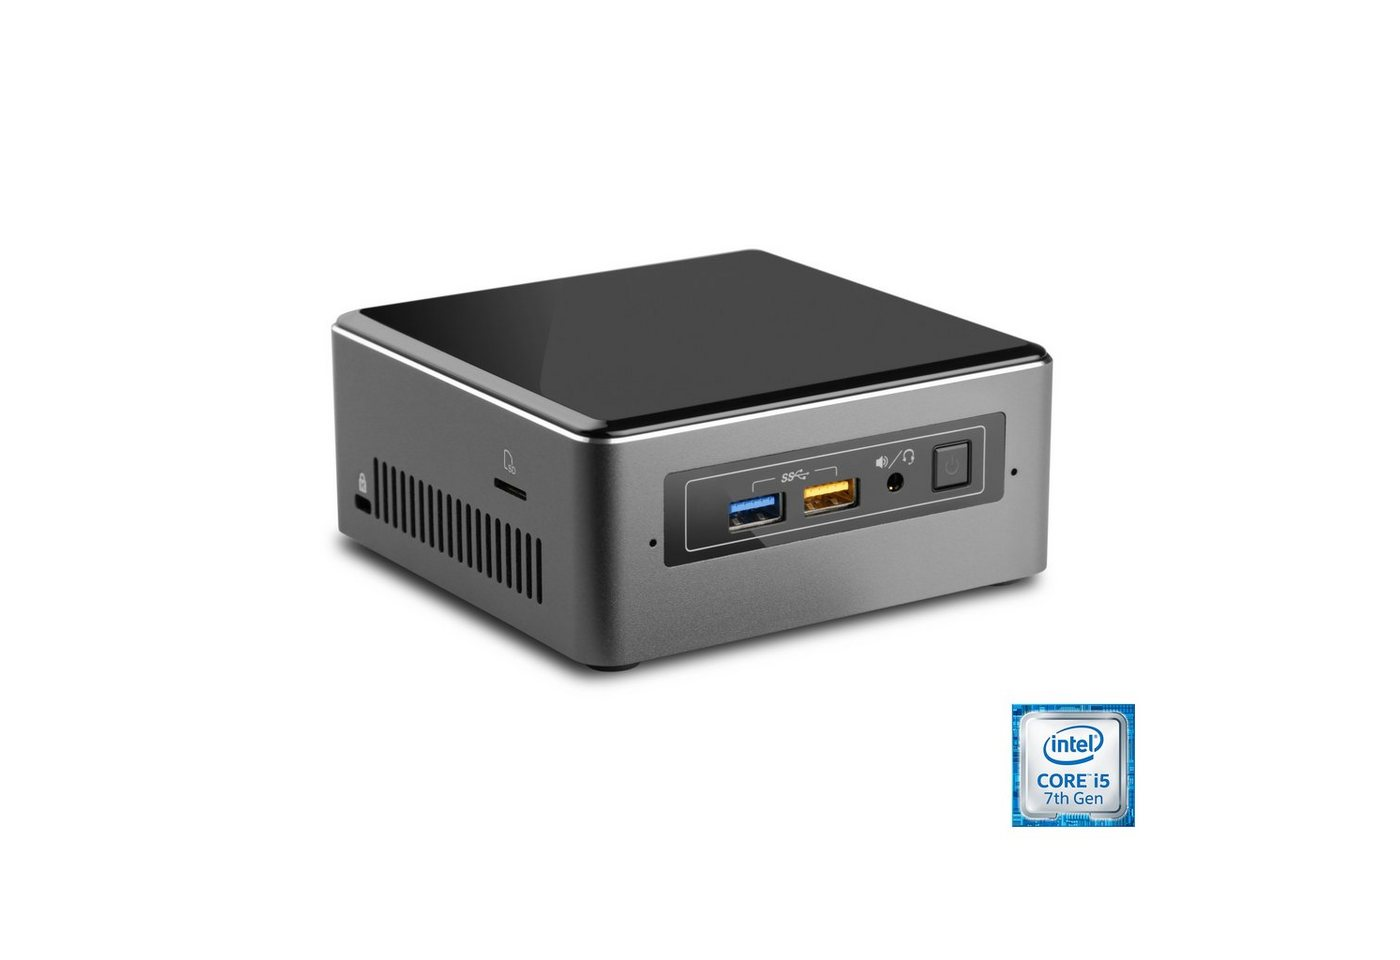 csl-mini-pc-core-i5-7260u-intel-hd-640-8gb-ddr4-250gb-ssd-intel-nuc